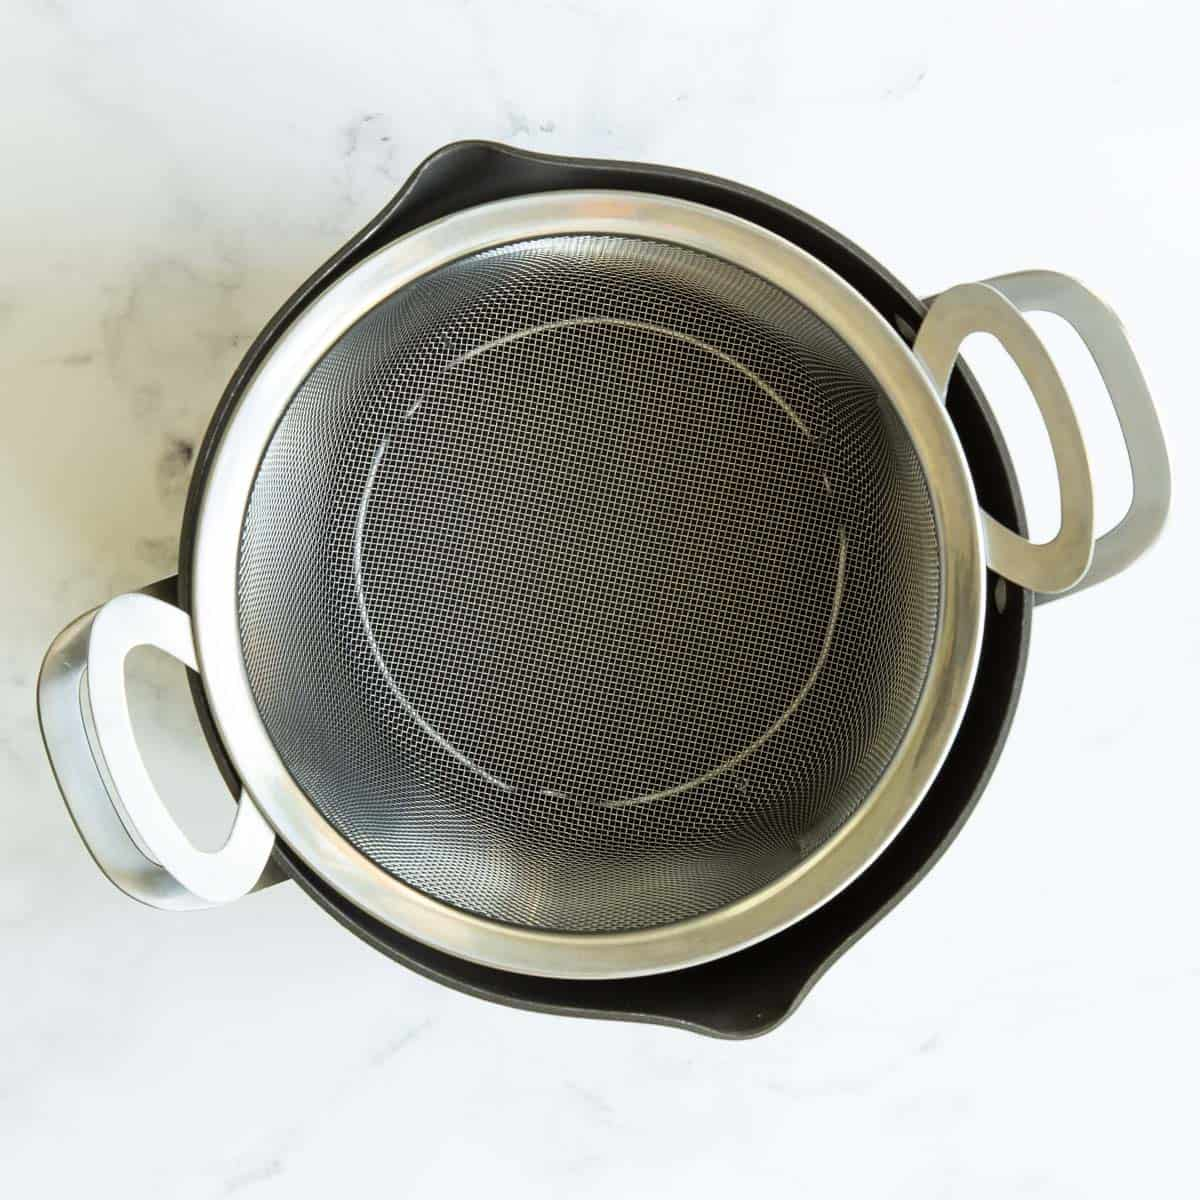 A stainless mesh strainer inserted into a pot to make a makeshift steamer basket.